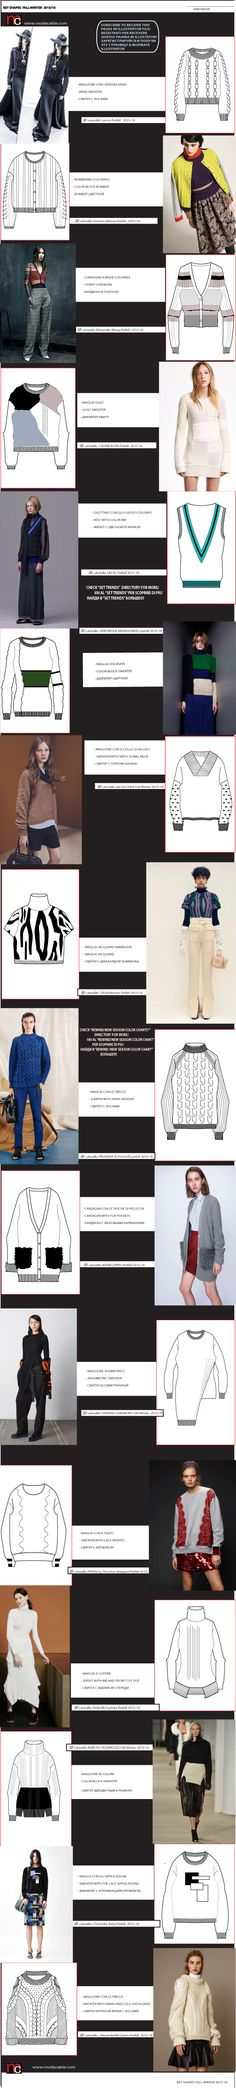 Knitwear key shapes FW2015/16 only at www.modacable.com!!! Join us and get a free access to the 2015-16 folder with all the colors, flats, mood boards!!!